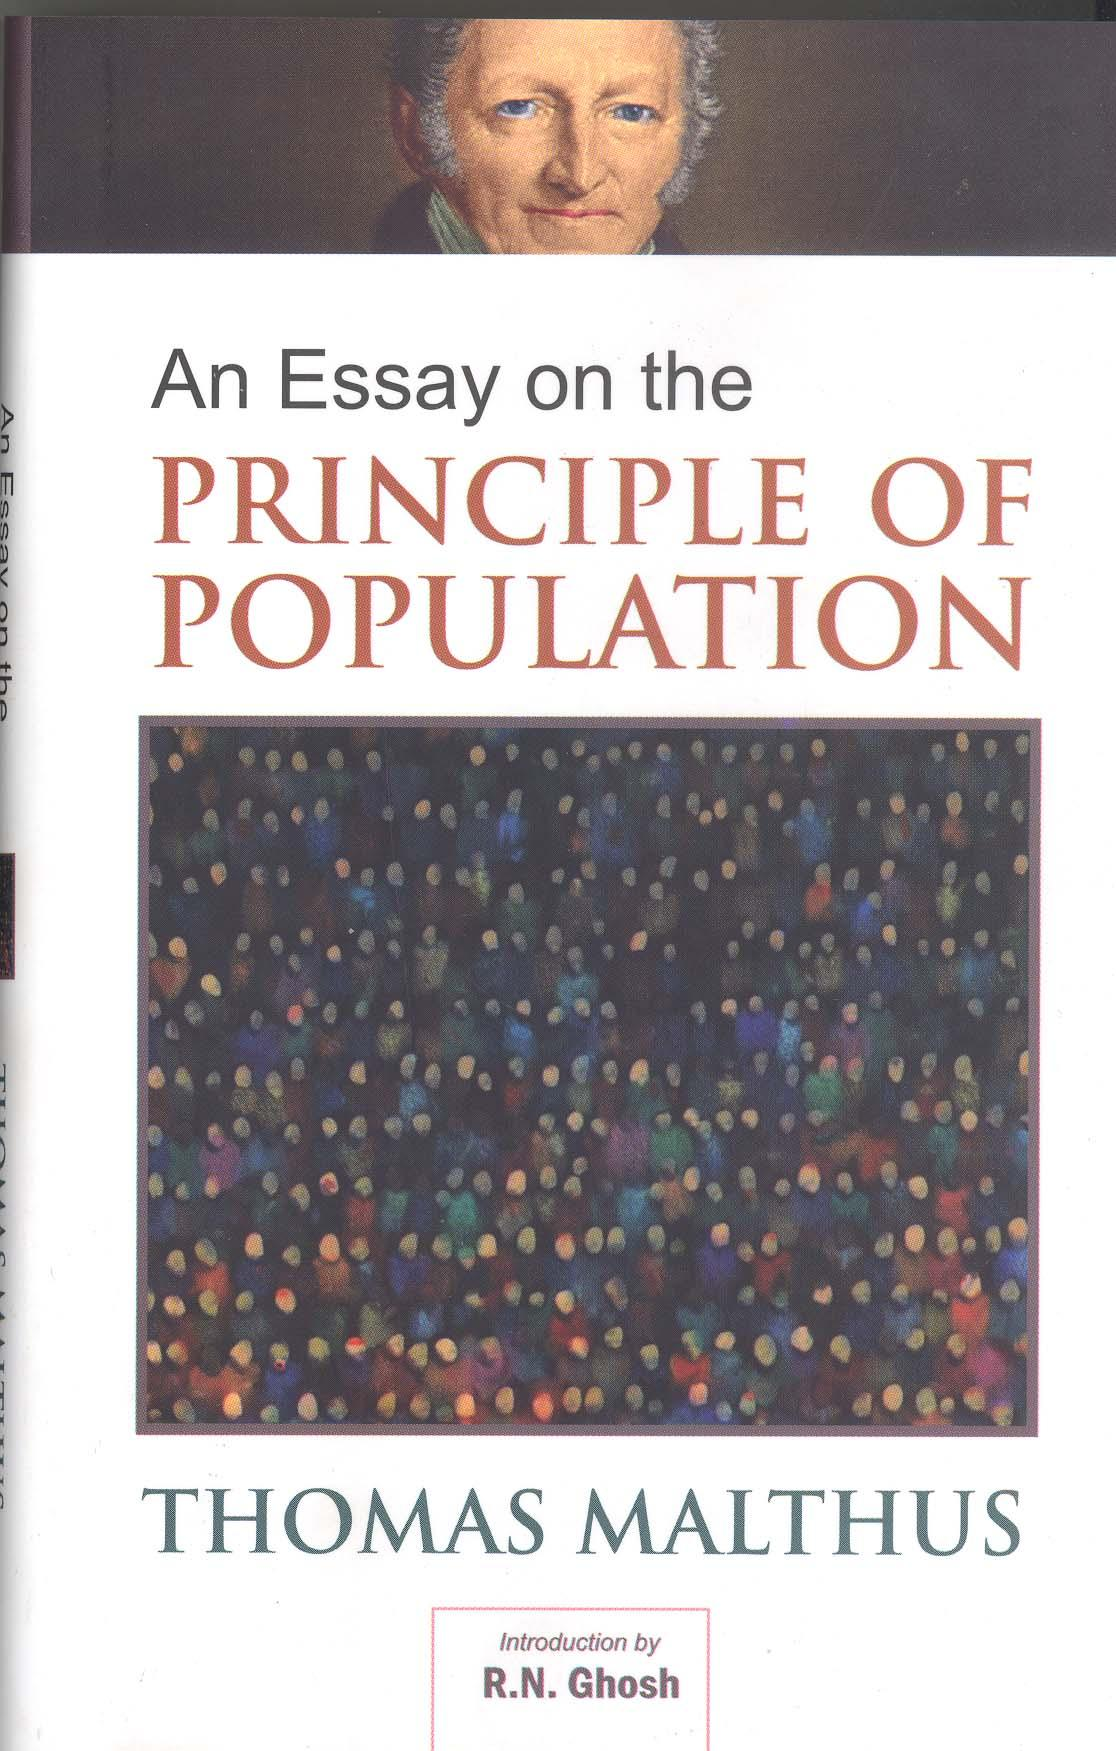 essay on the principles of population thomas malthus Contents thomas robert malthus preface chapter i chapter ii in spite of his gentle personal nature and scholarly way of life, malthus became embroiled in controversy through his best known piece of work, the essay on the principle of population, which was first published anonymously in.